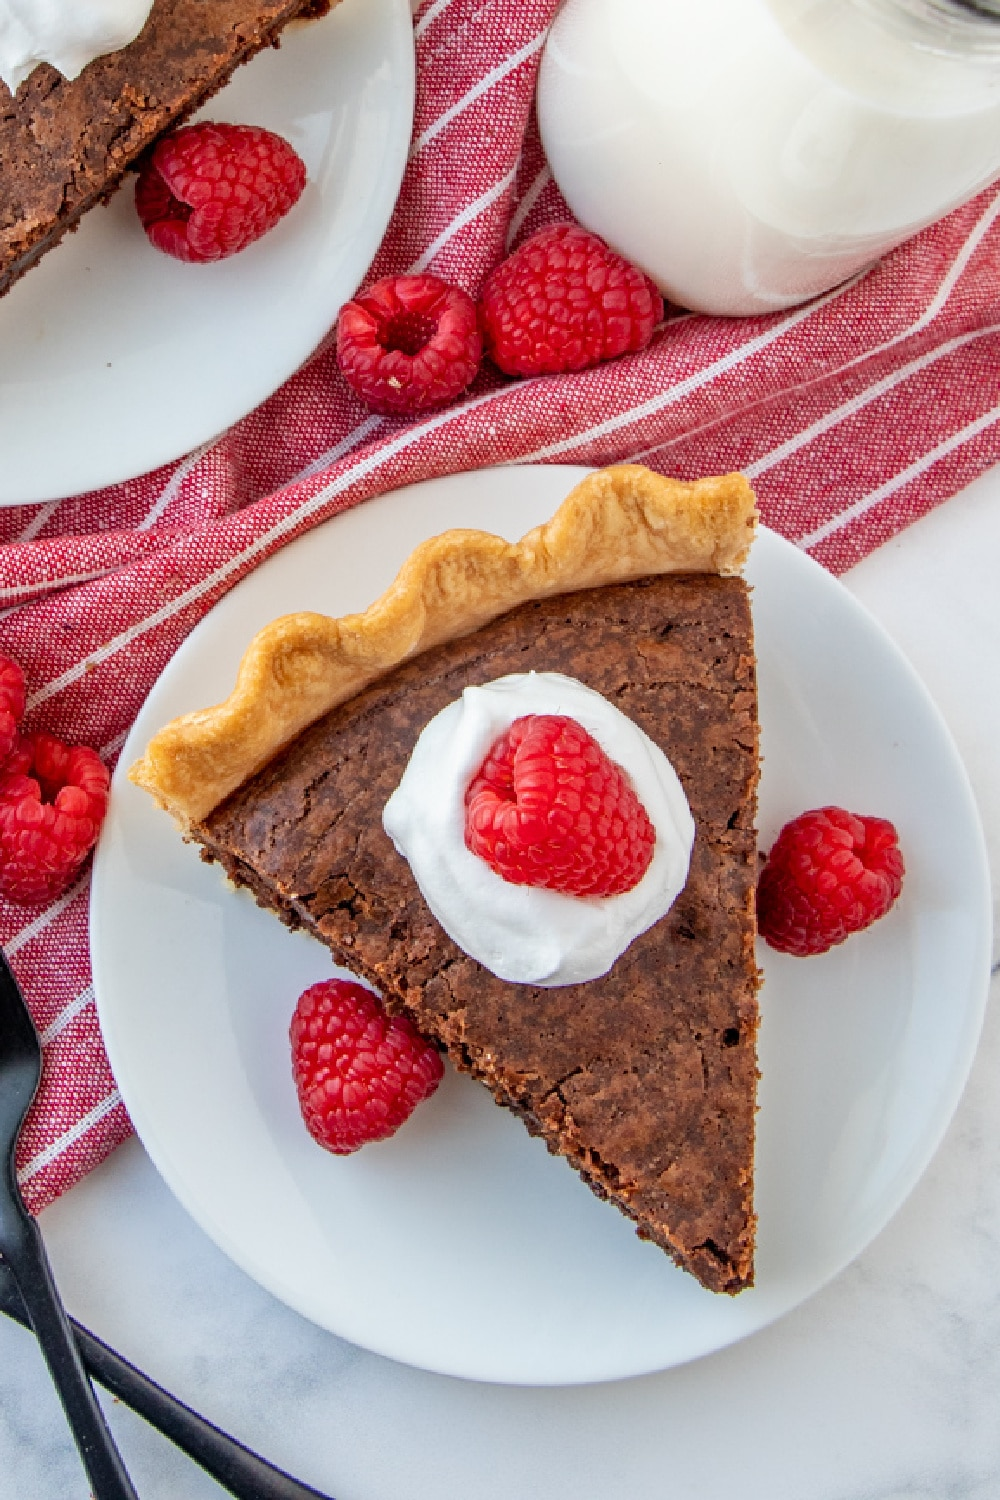 A slice of pie topped with whipped cream and raspberries.